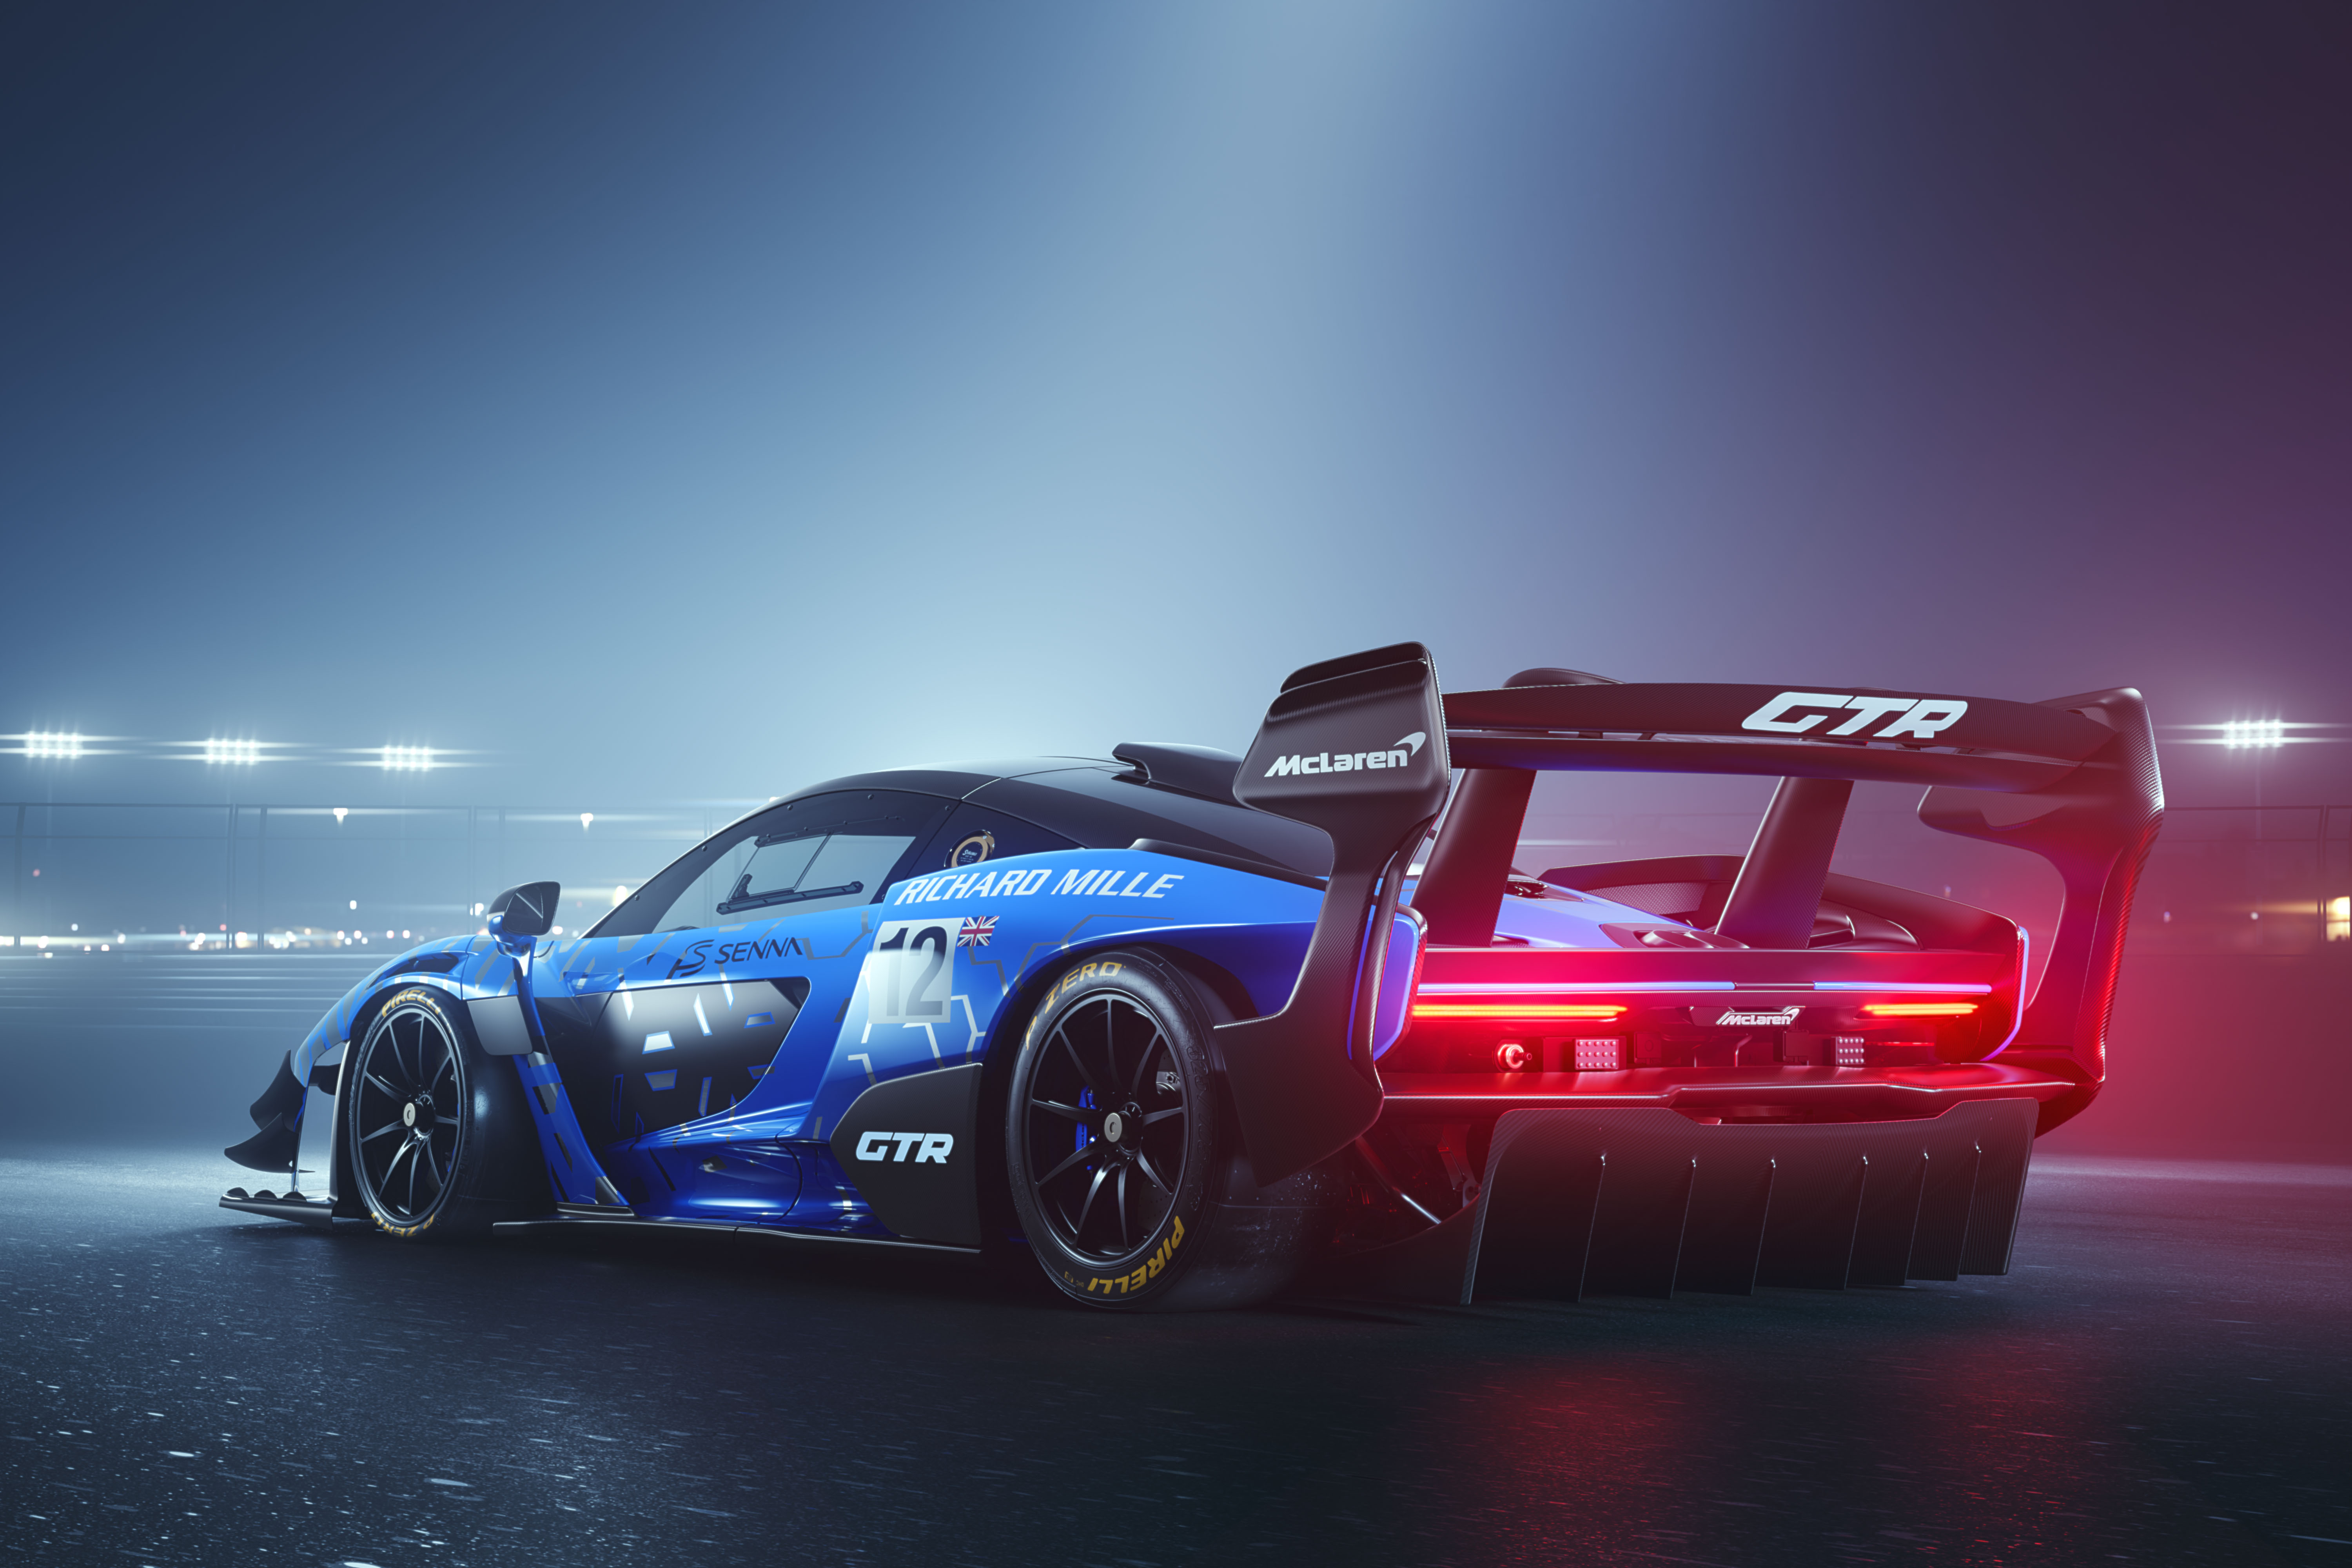 2019 McLaren Senna GTR Rear, HD Cars, 4k Wallpapers ...